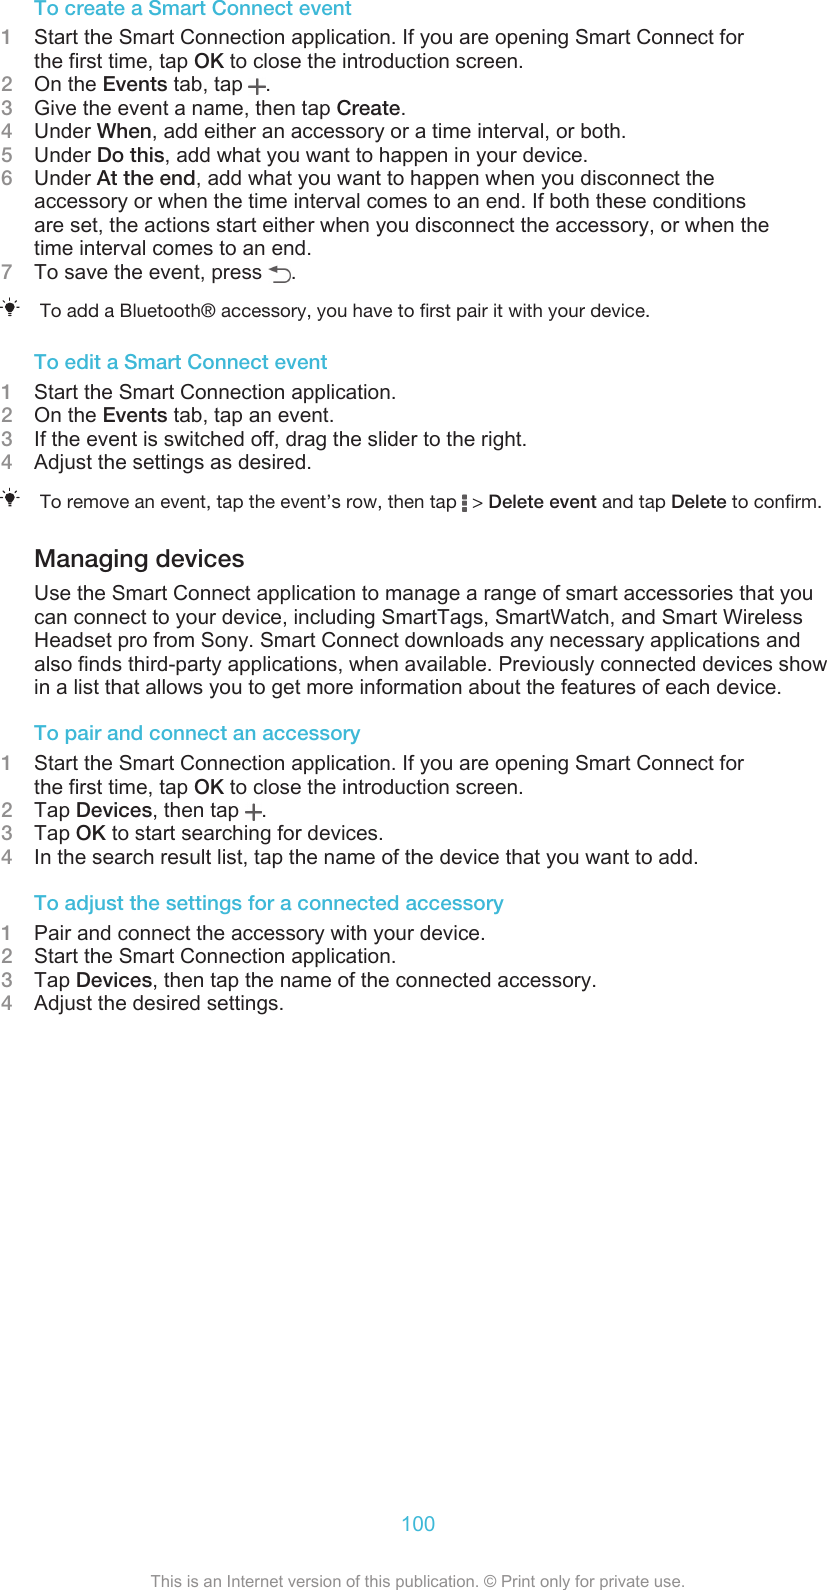 Sony Mobile Communications AB Manual Userguide AE C5302